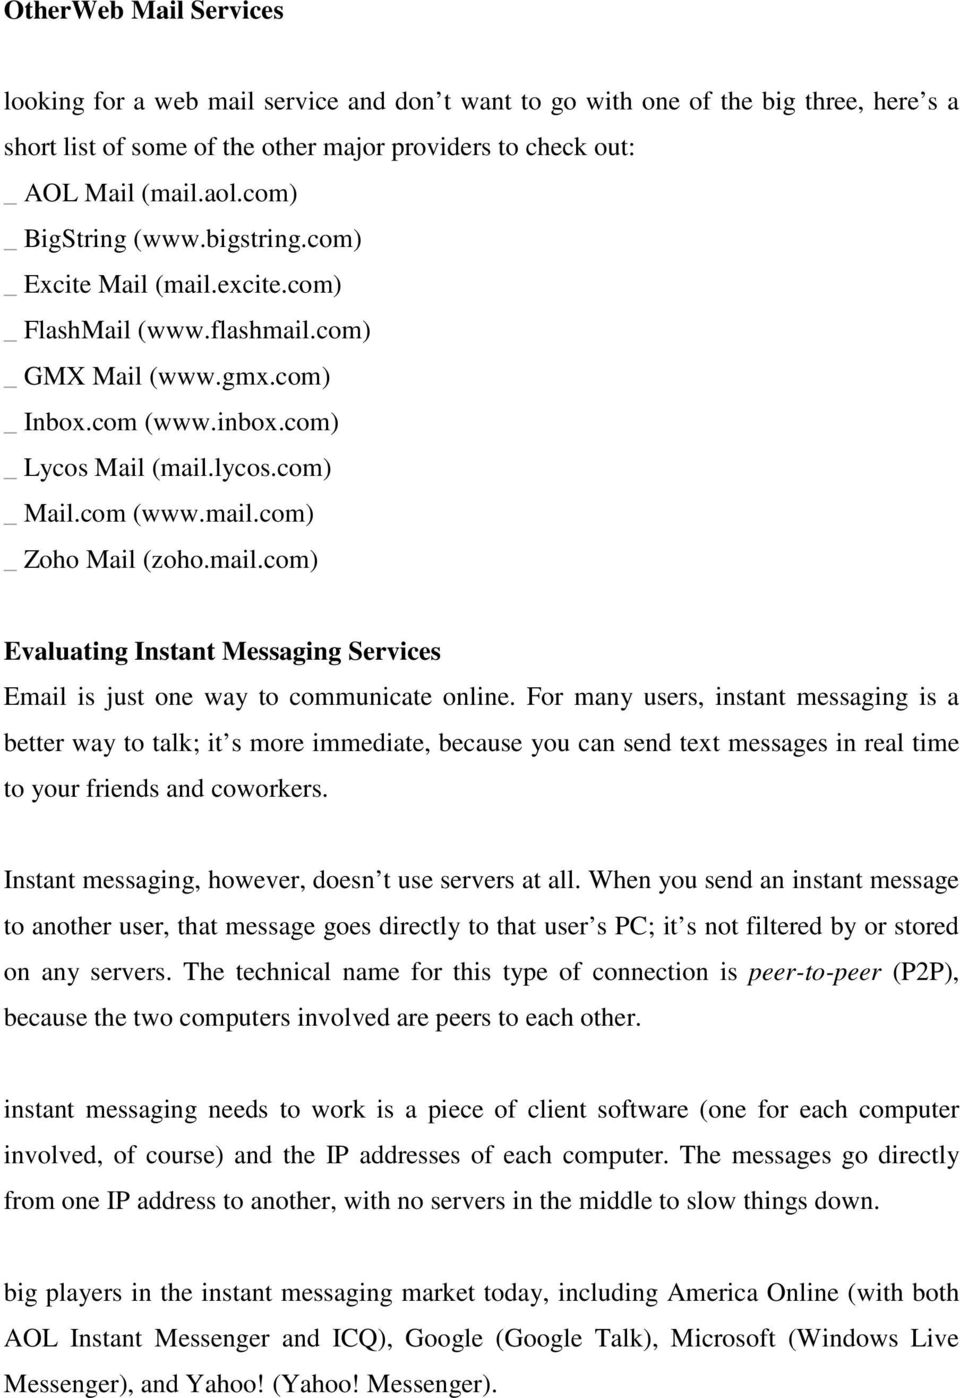 Unit 4 Evaluating Web Mail Services Pdf Free Download